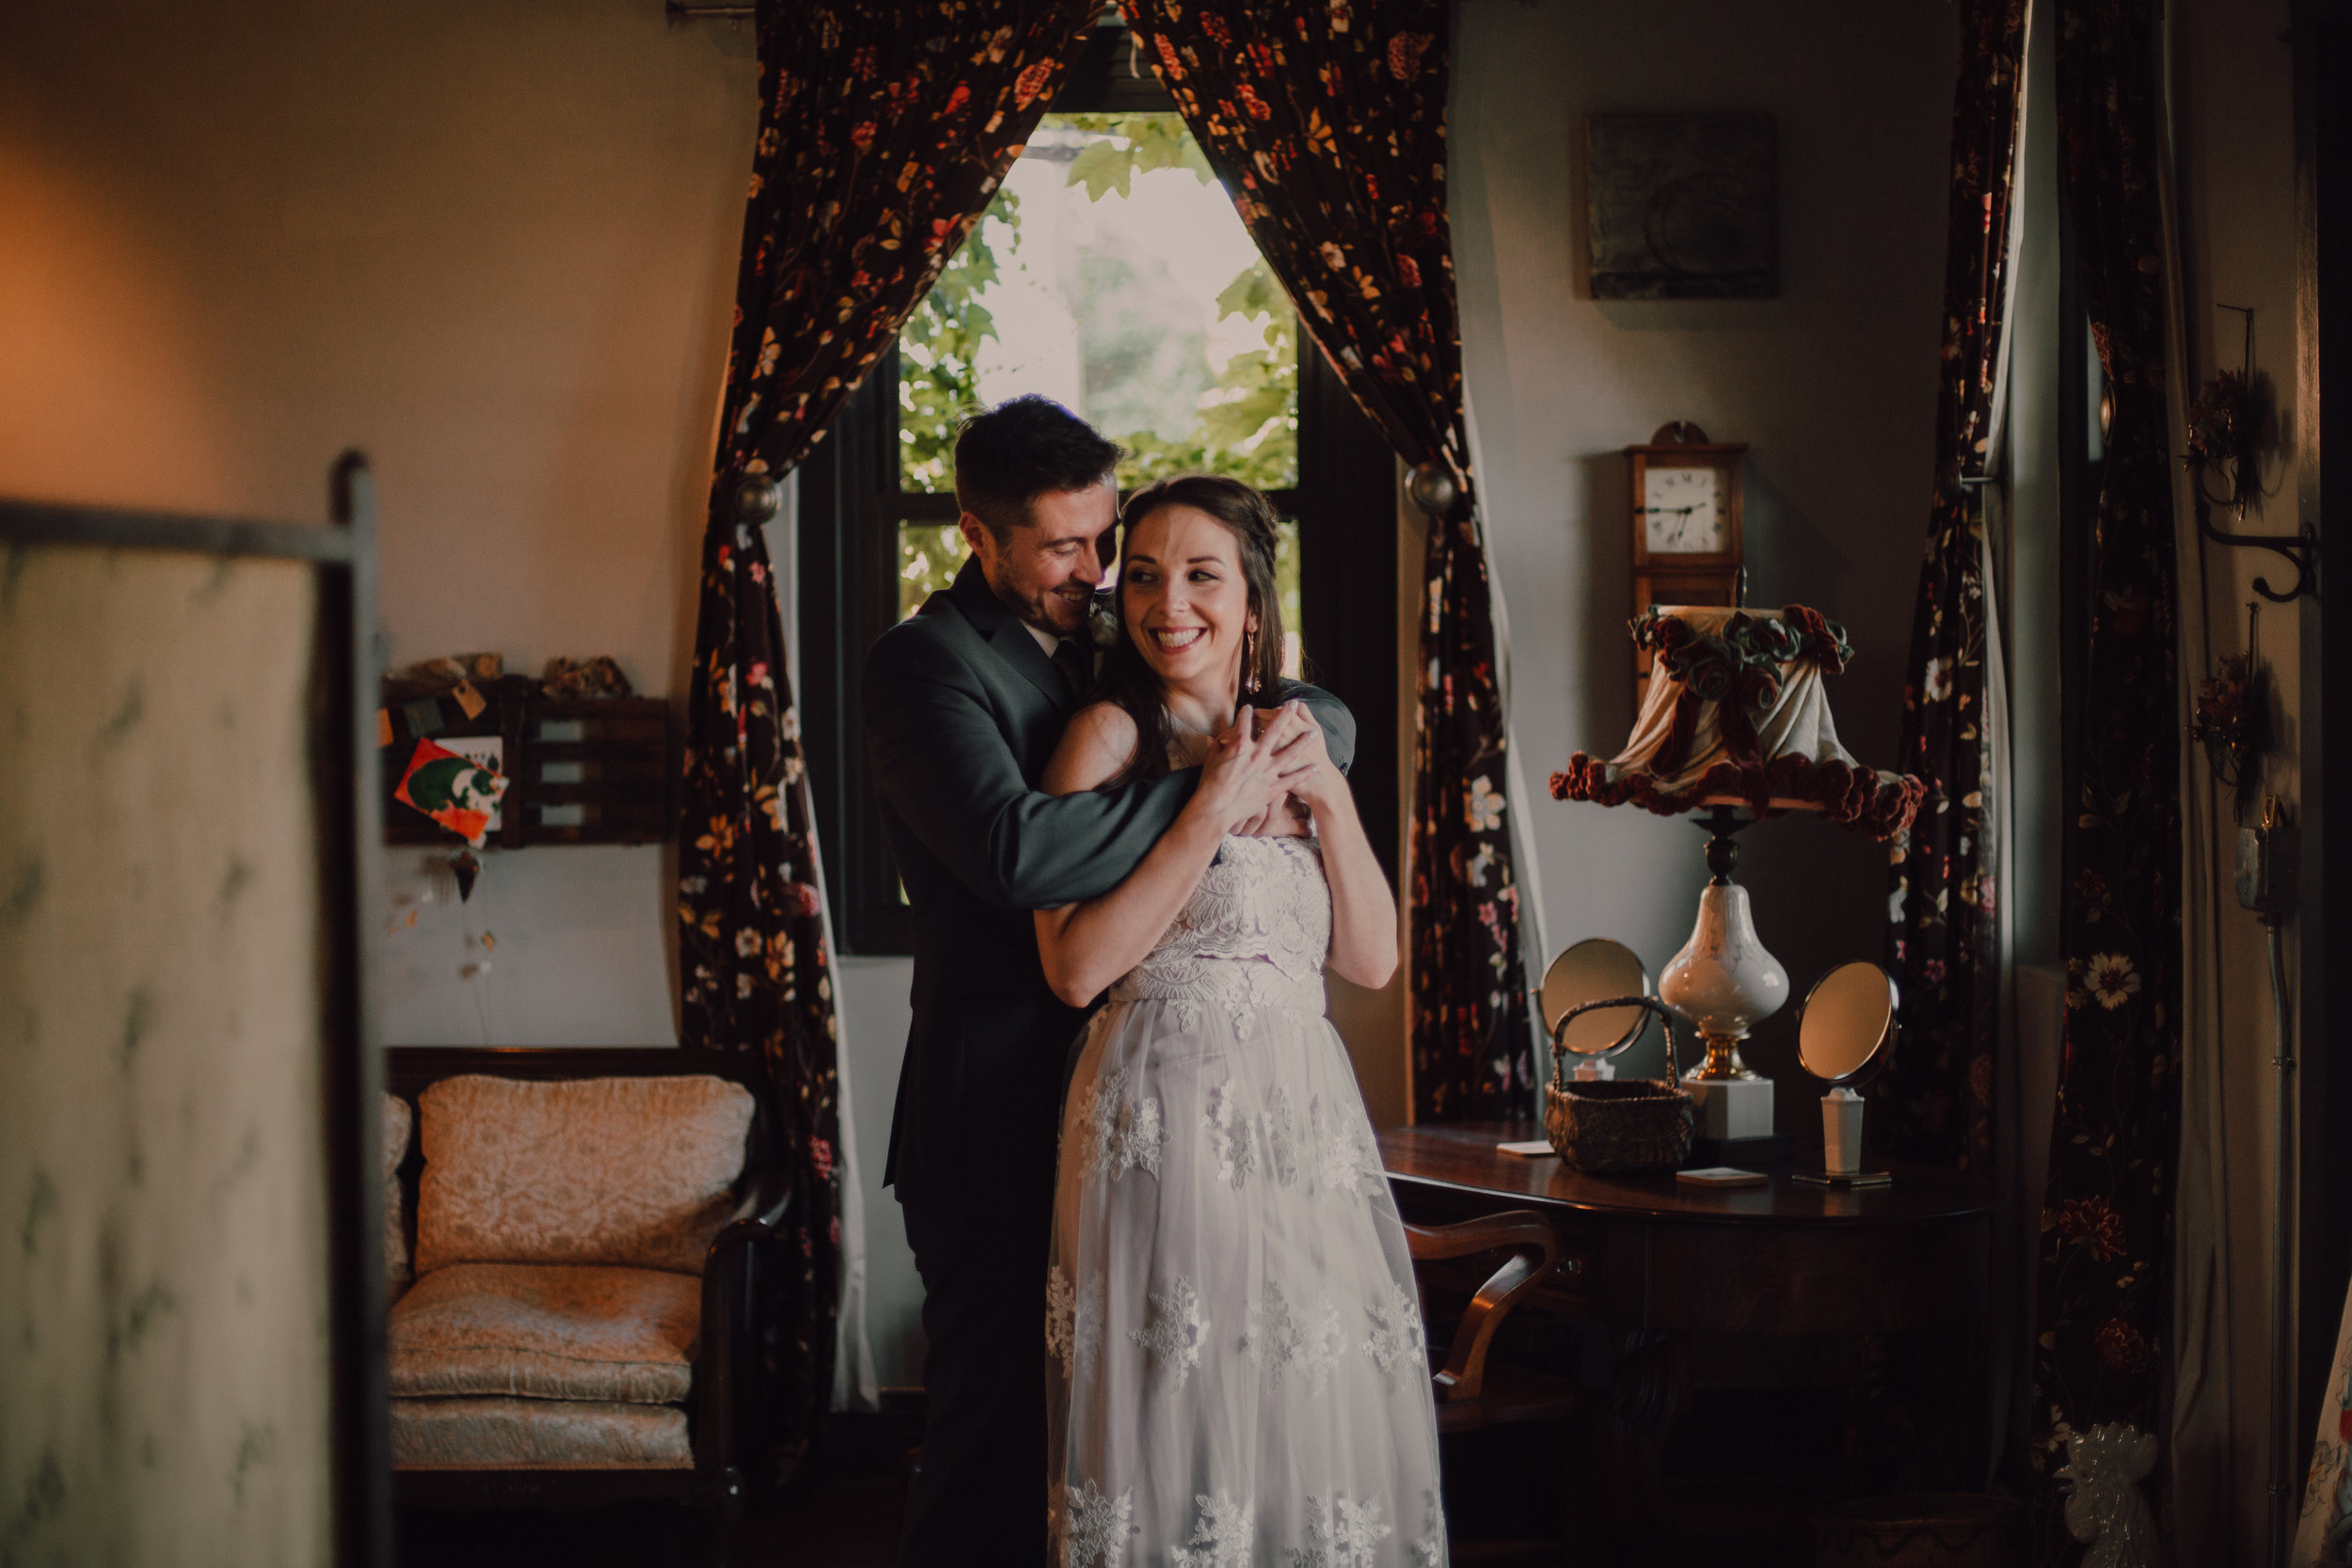 Intimate North Side Chicago Wedding - Venue: Firehouse ChicagoFlowers: A Pretty FlowerDonuts: Firecakes DonutsENGAGEMENT SHOOT